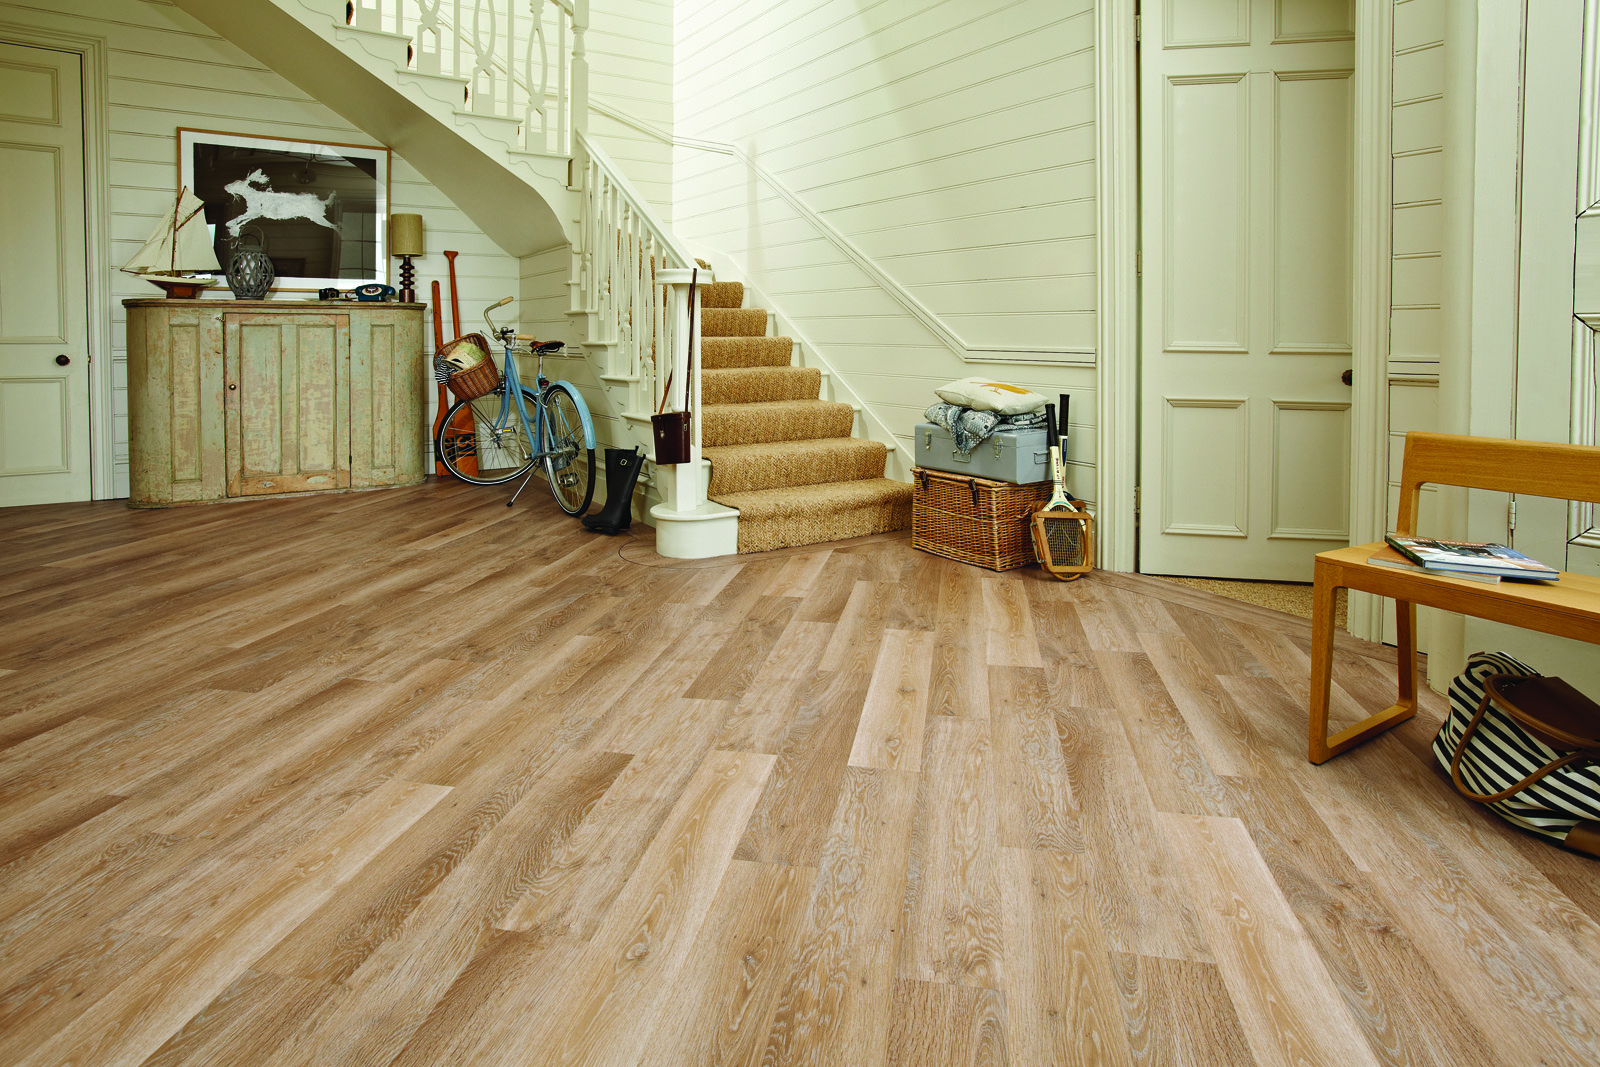 karndean vinyl flooring knight tile kp94 pale limed oak sqm new ebay. Black Bedroom Furniture Sets. Home Design Ideas